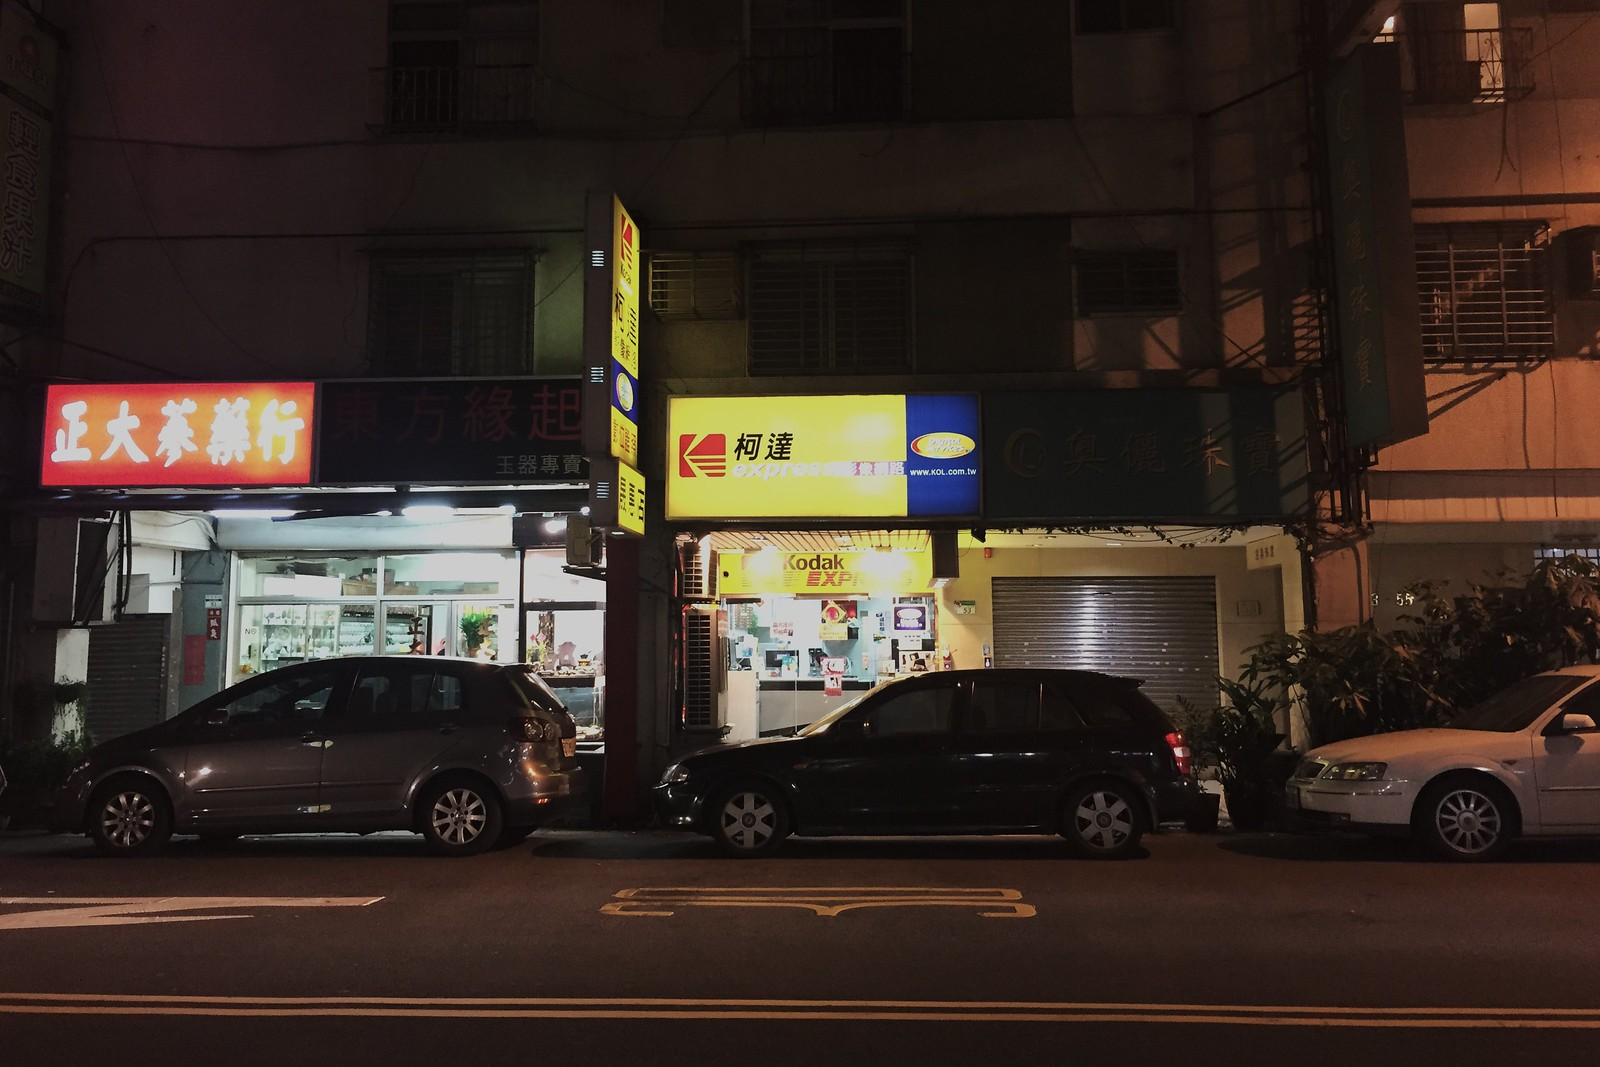 Small Kodak store to buy film in Taipei